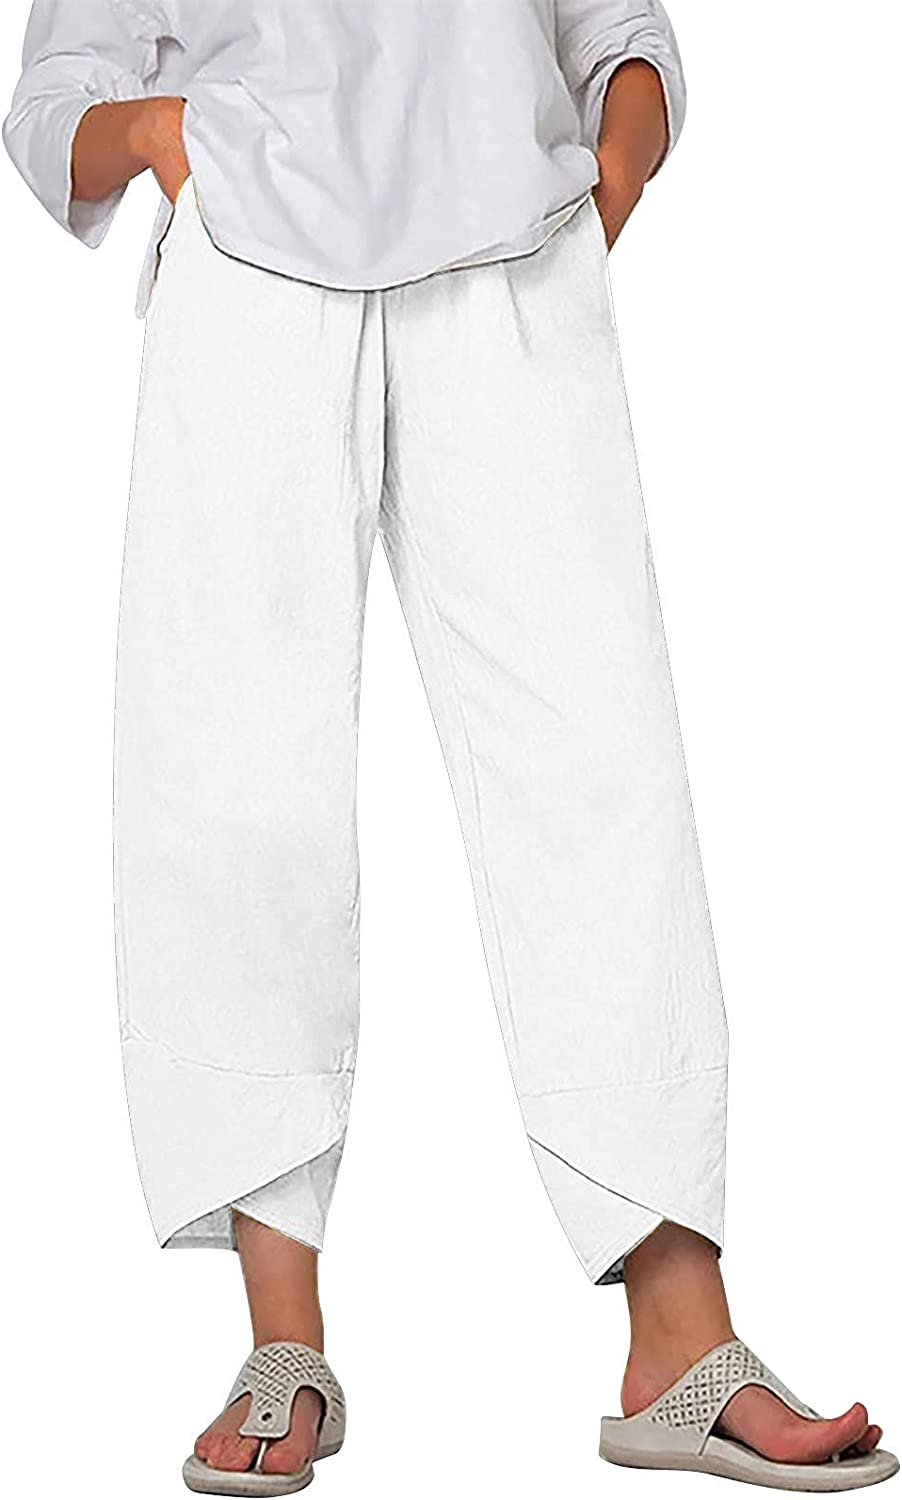 TZW Womens Casual Ranking Spasm price TOP3 Elastic High Waist Cotton St Pants Loose Linen